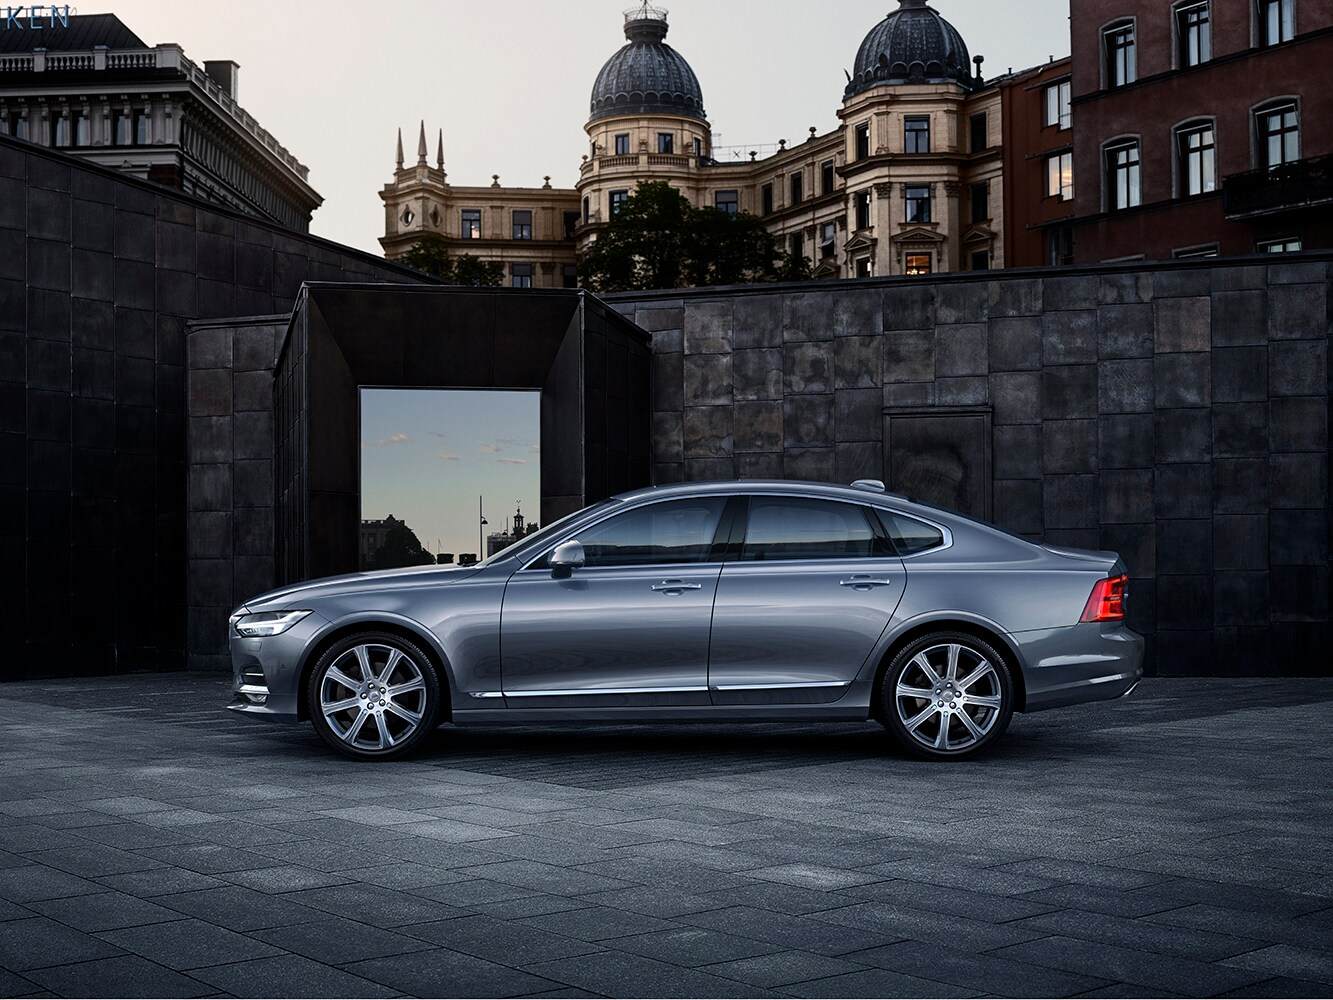 Side view of a Volvo S90